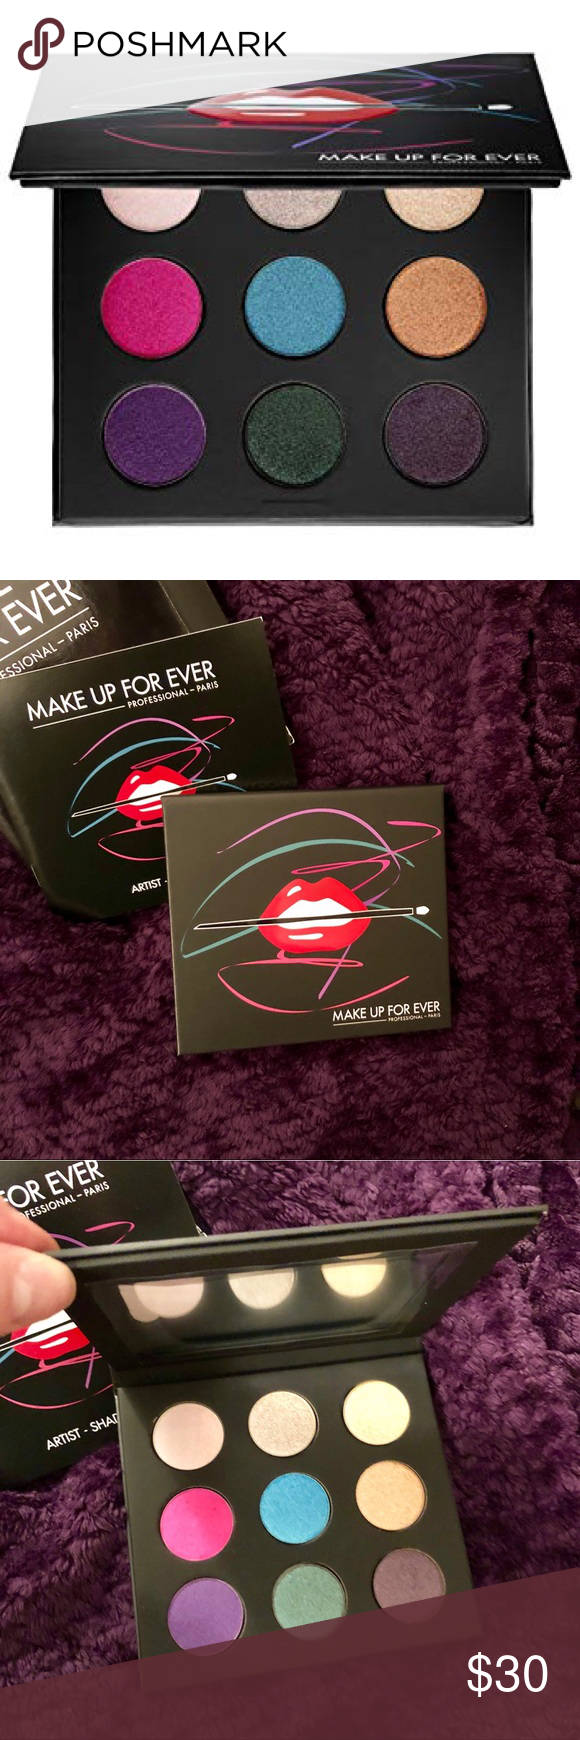 Makeup Forever Eyeshadow Palette 2 Brand new in box, never